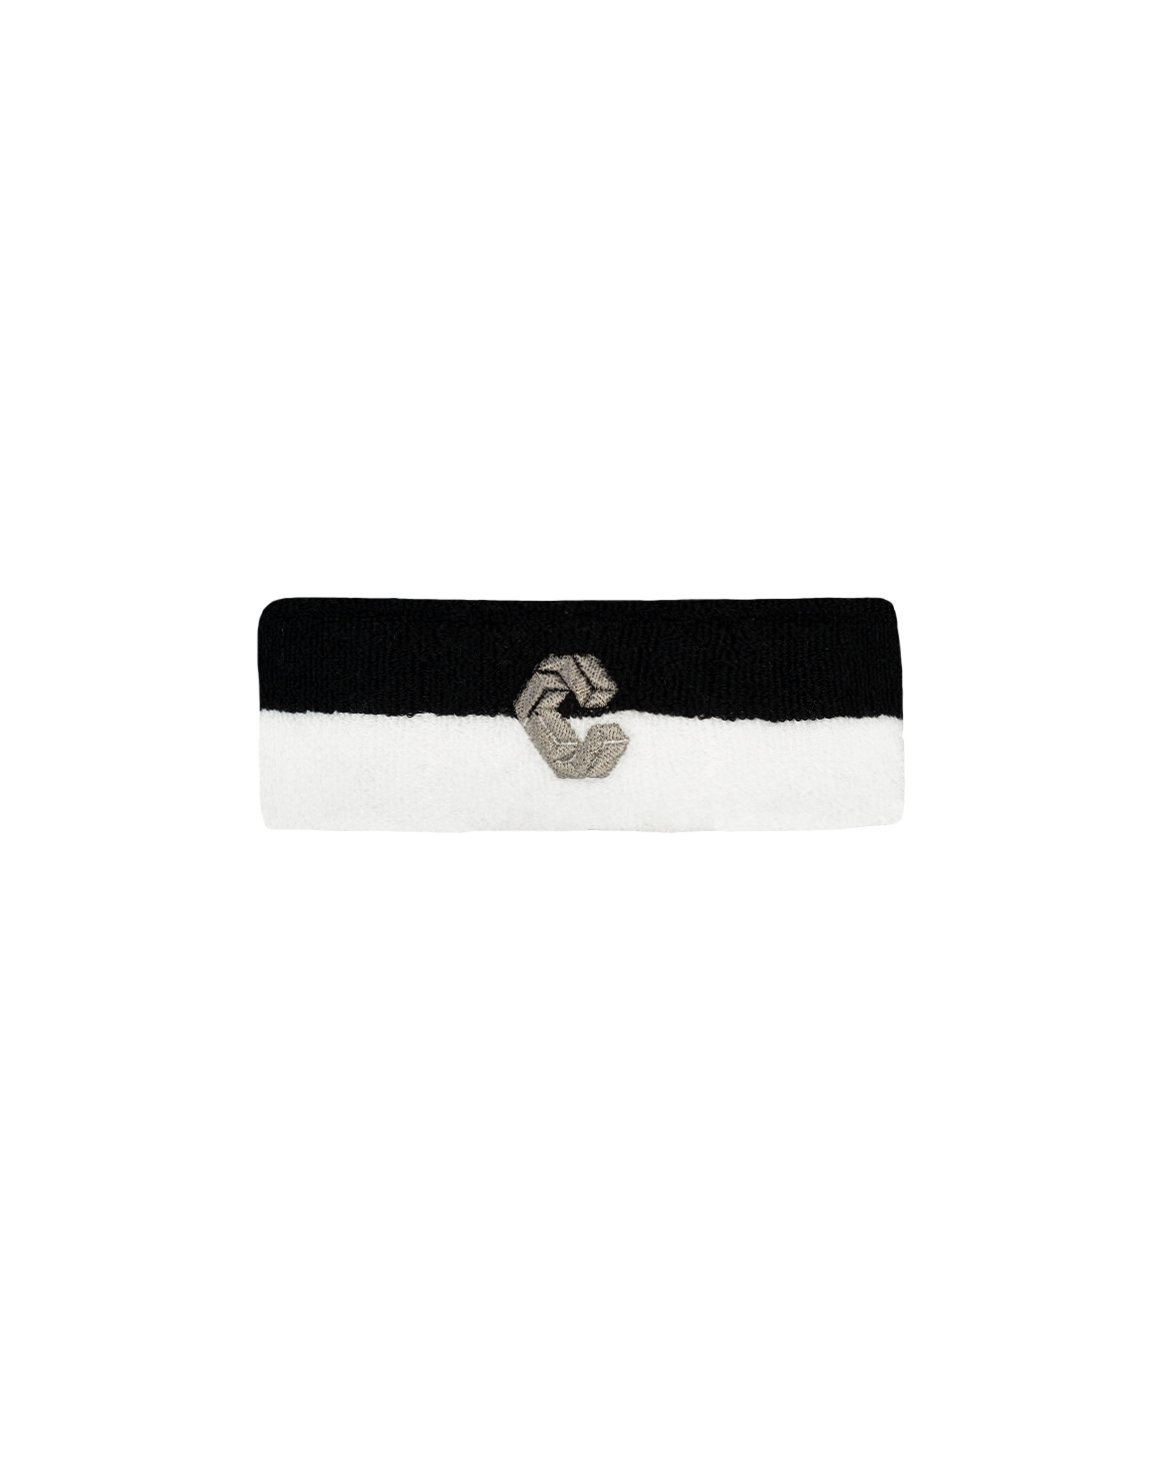 CRONOS BI-COLOR HEAD BAND【BLACK×WHITE】